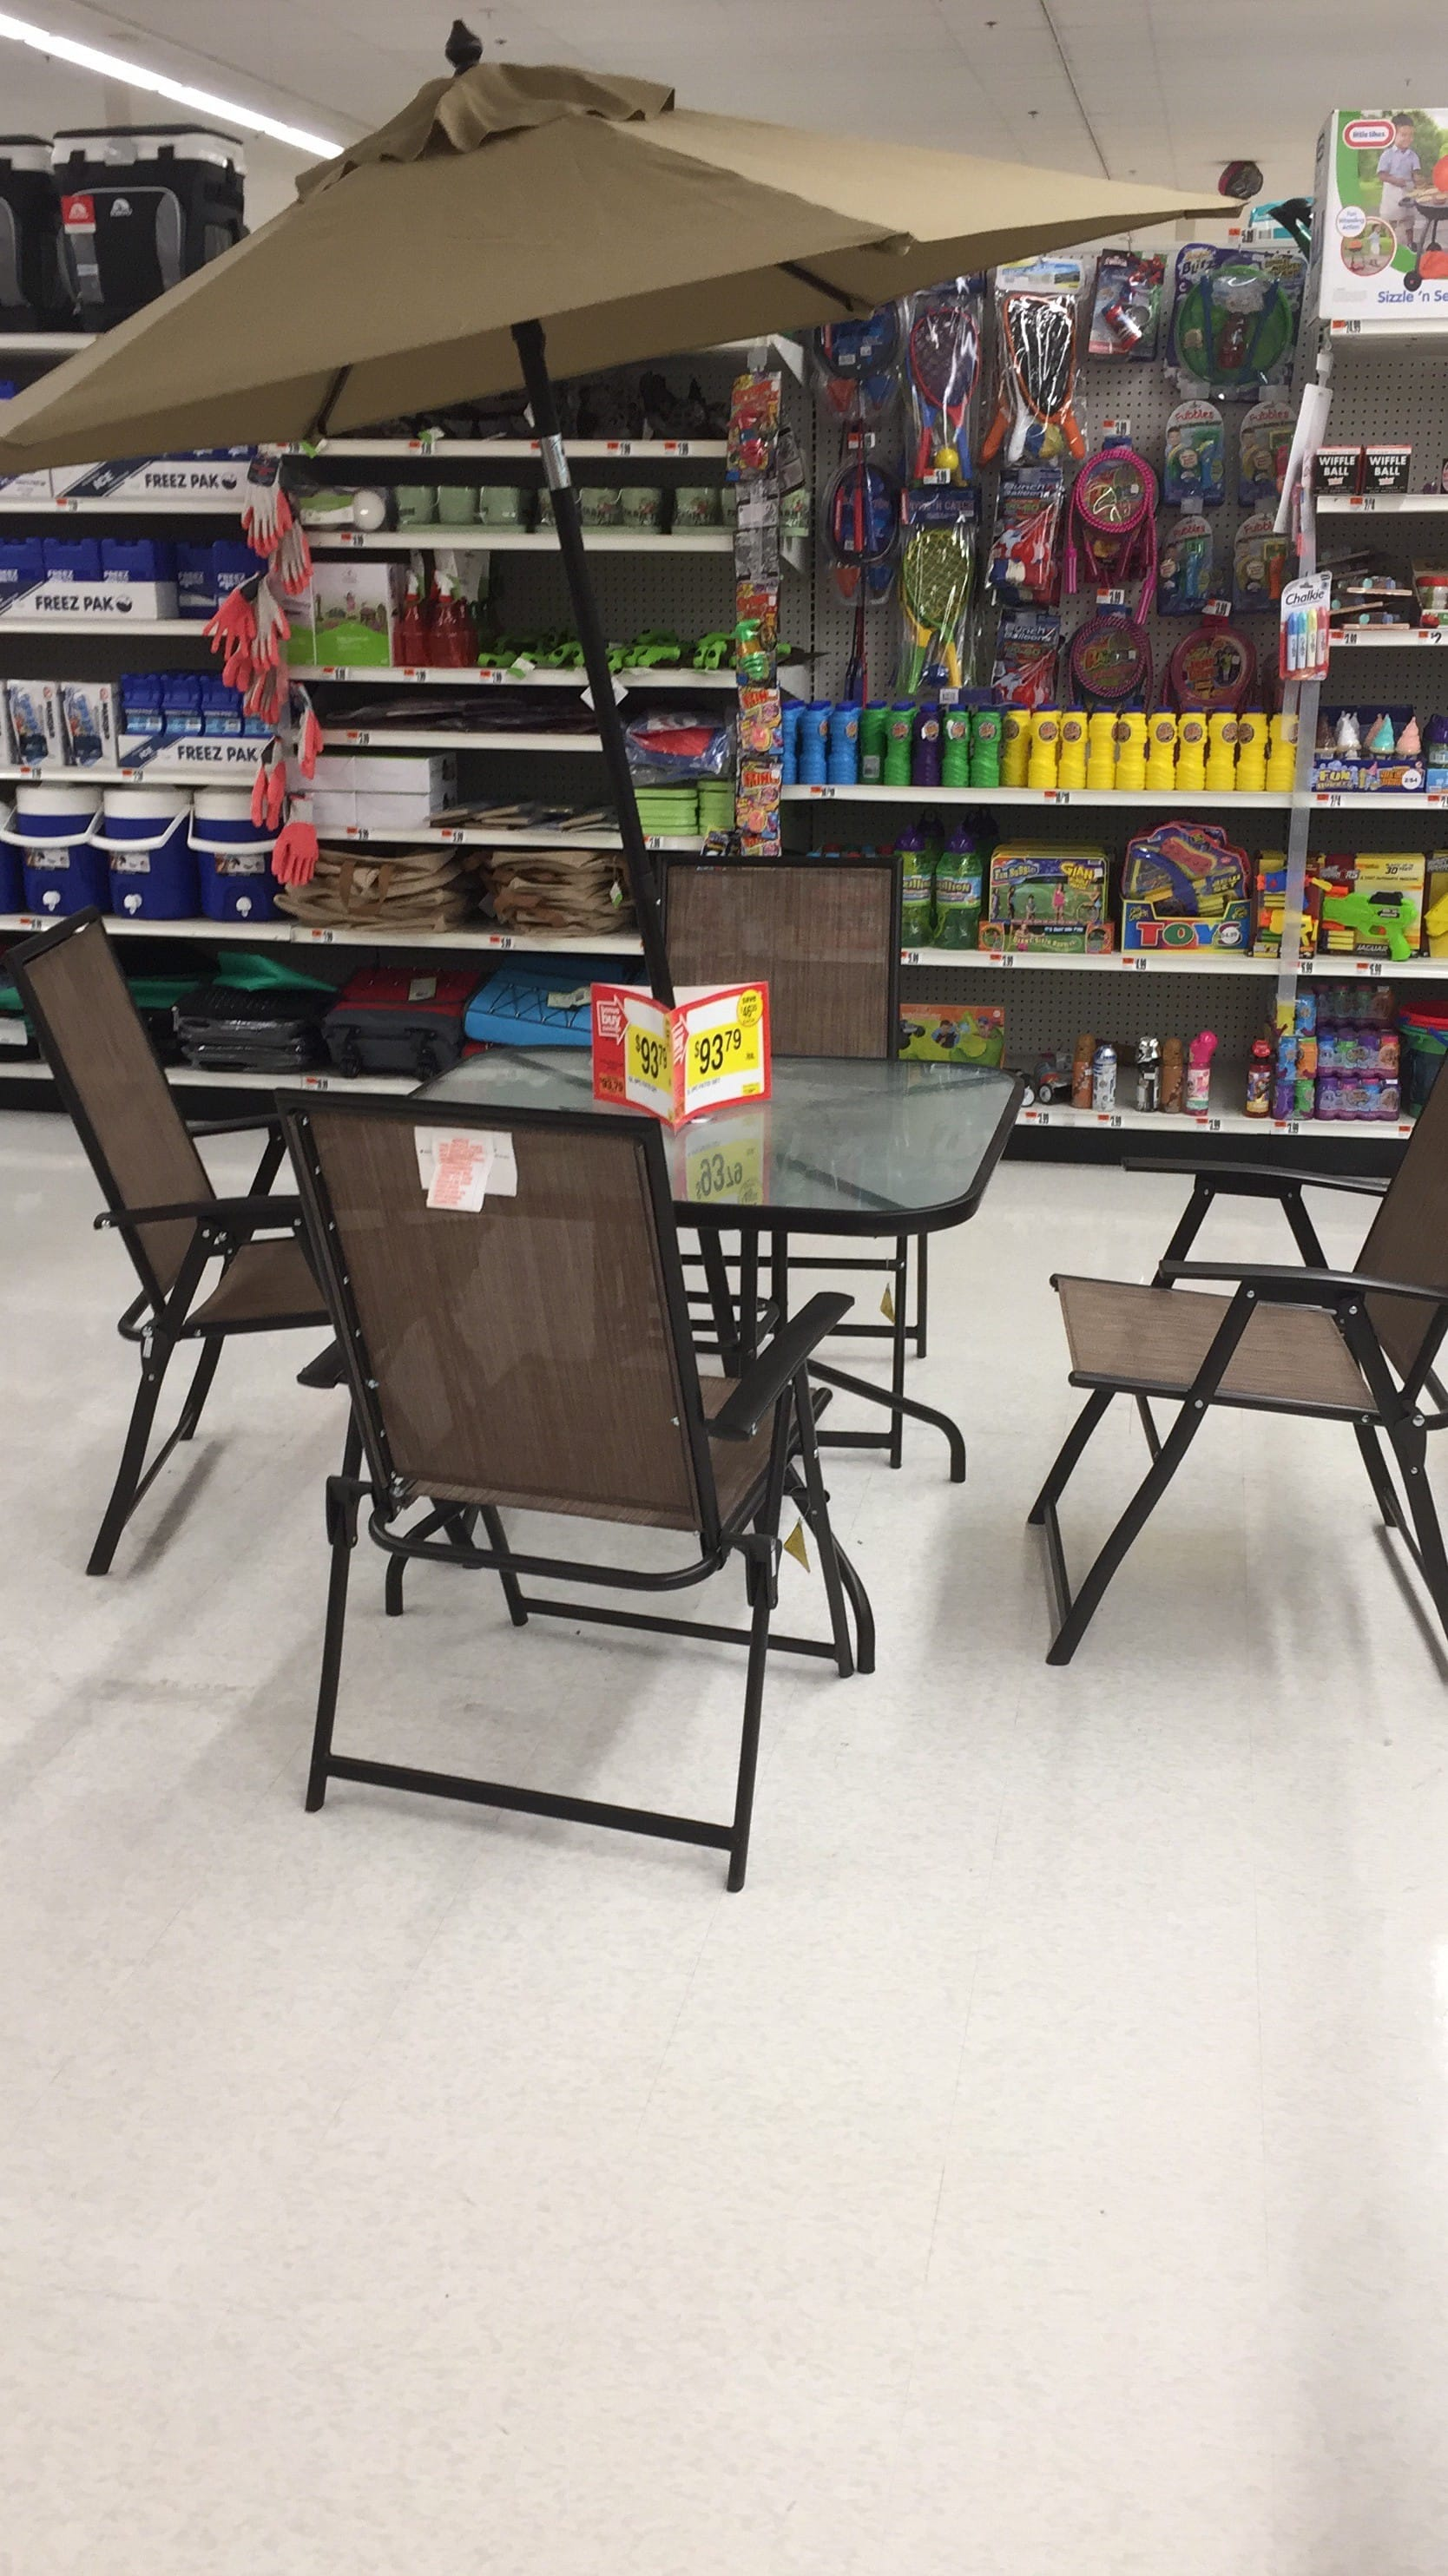 Superb 6 Piece Patio Set For $93.00 With Stop And Shop Rewards Membership Card.  Original Price